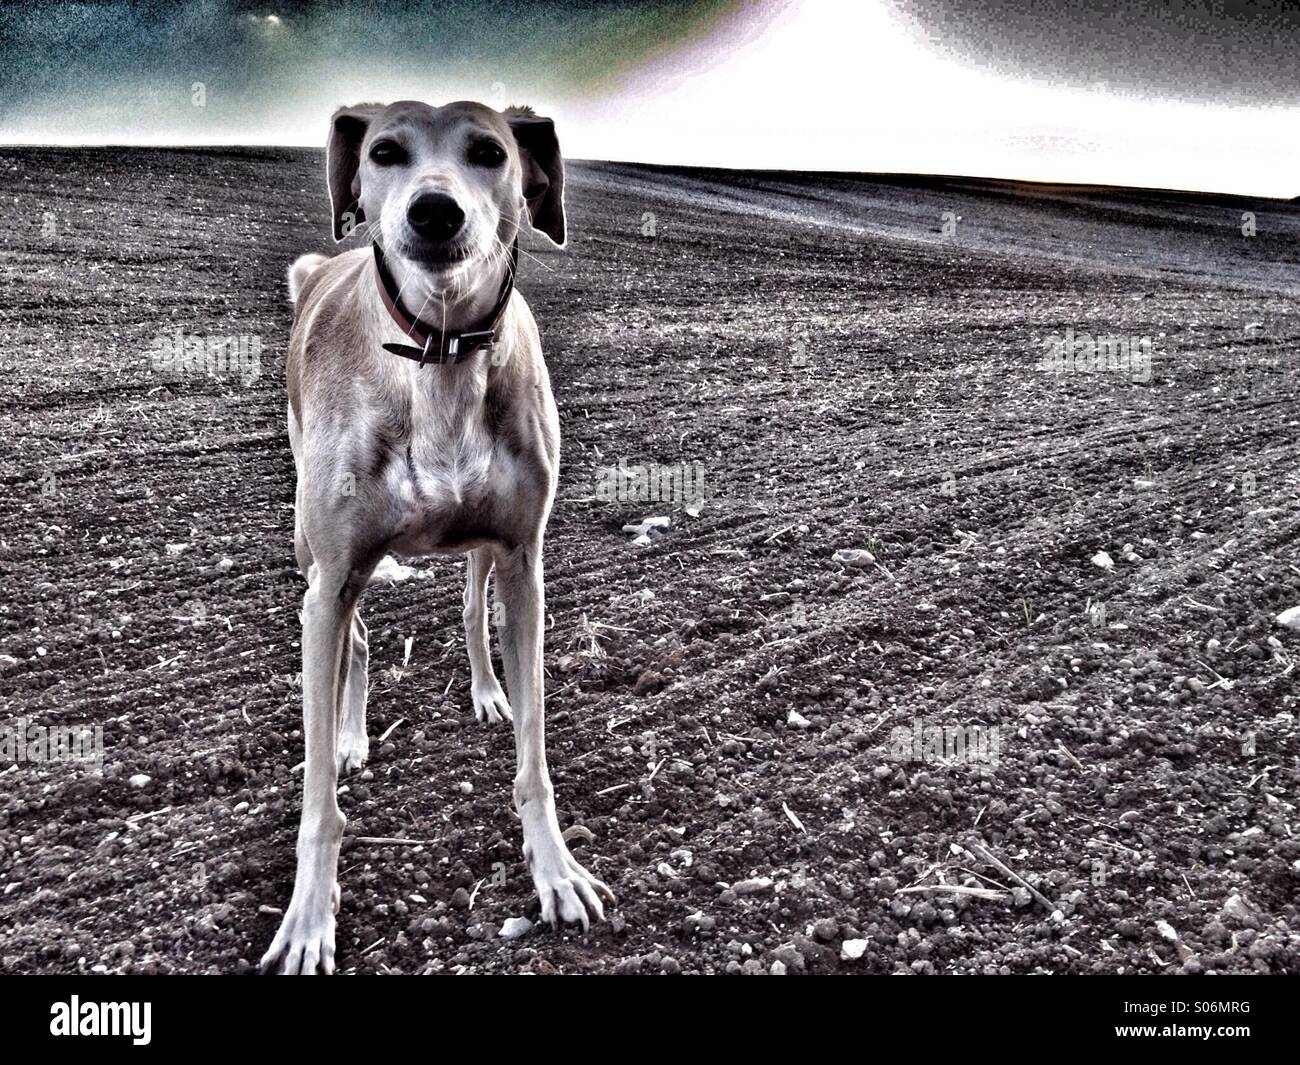 Dog in field staring into camera - Stock Image